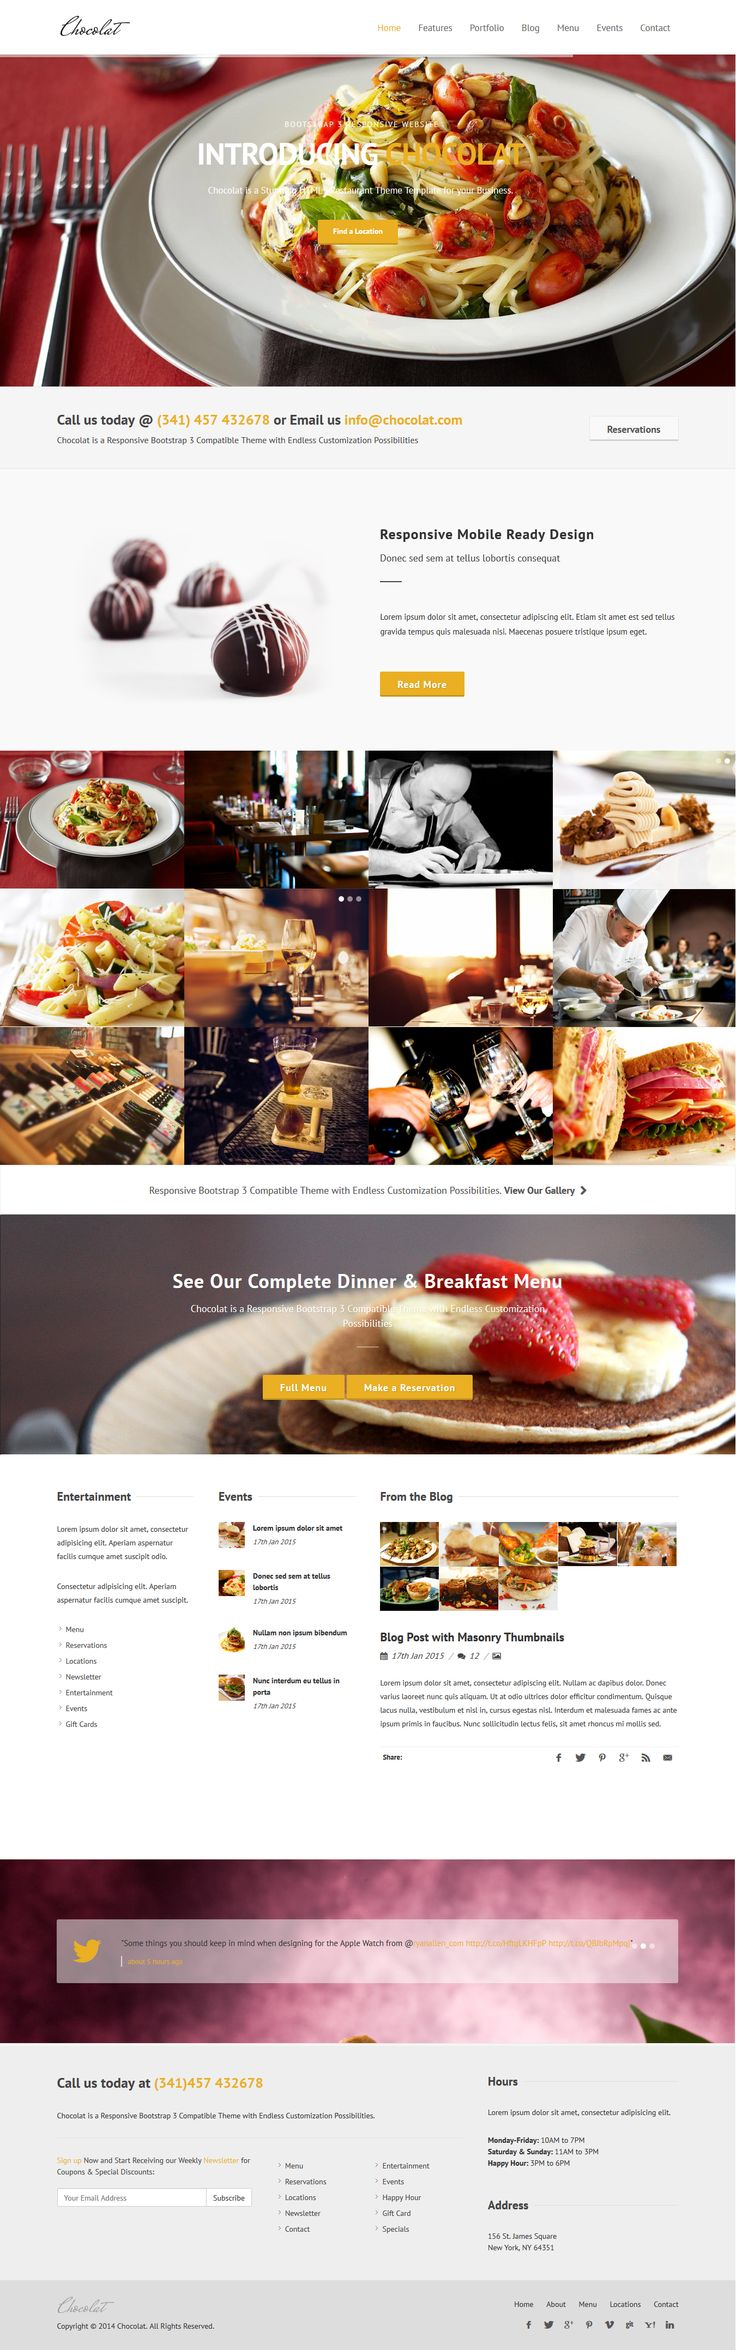 Chocolat is a Responsive Bootstrap HTML5 #Template ideal for the #hospitality industry including #restaurants, bars, nightclubs, resorts, #hotels and lodging. #website